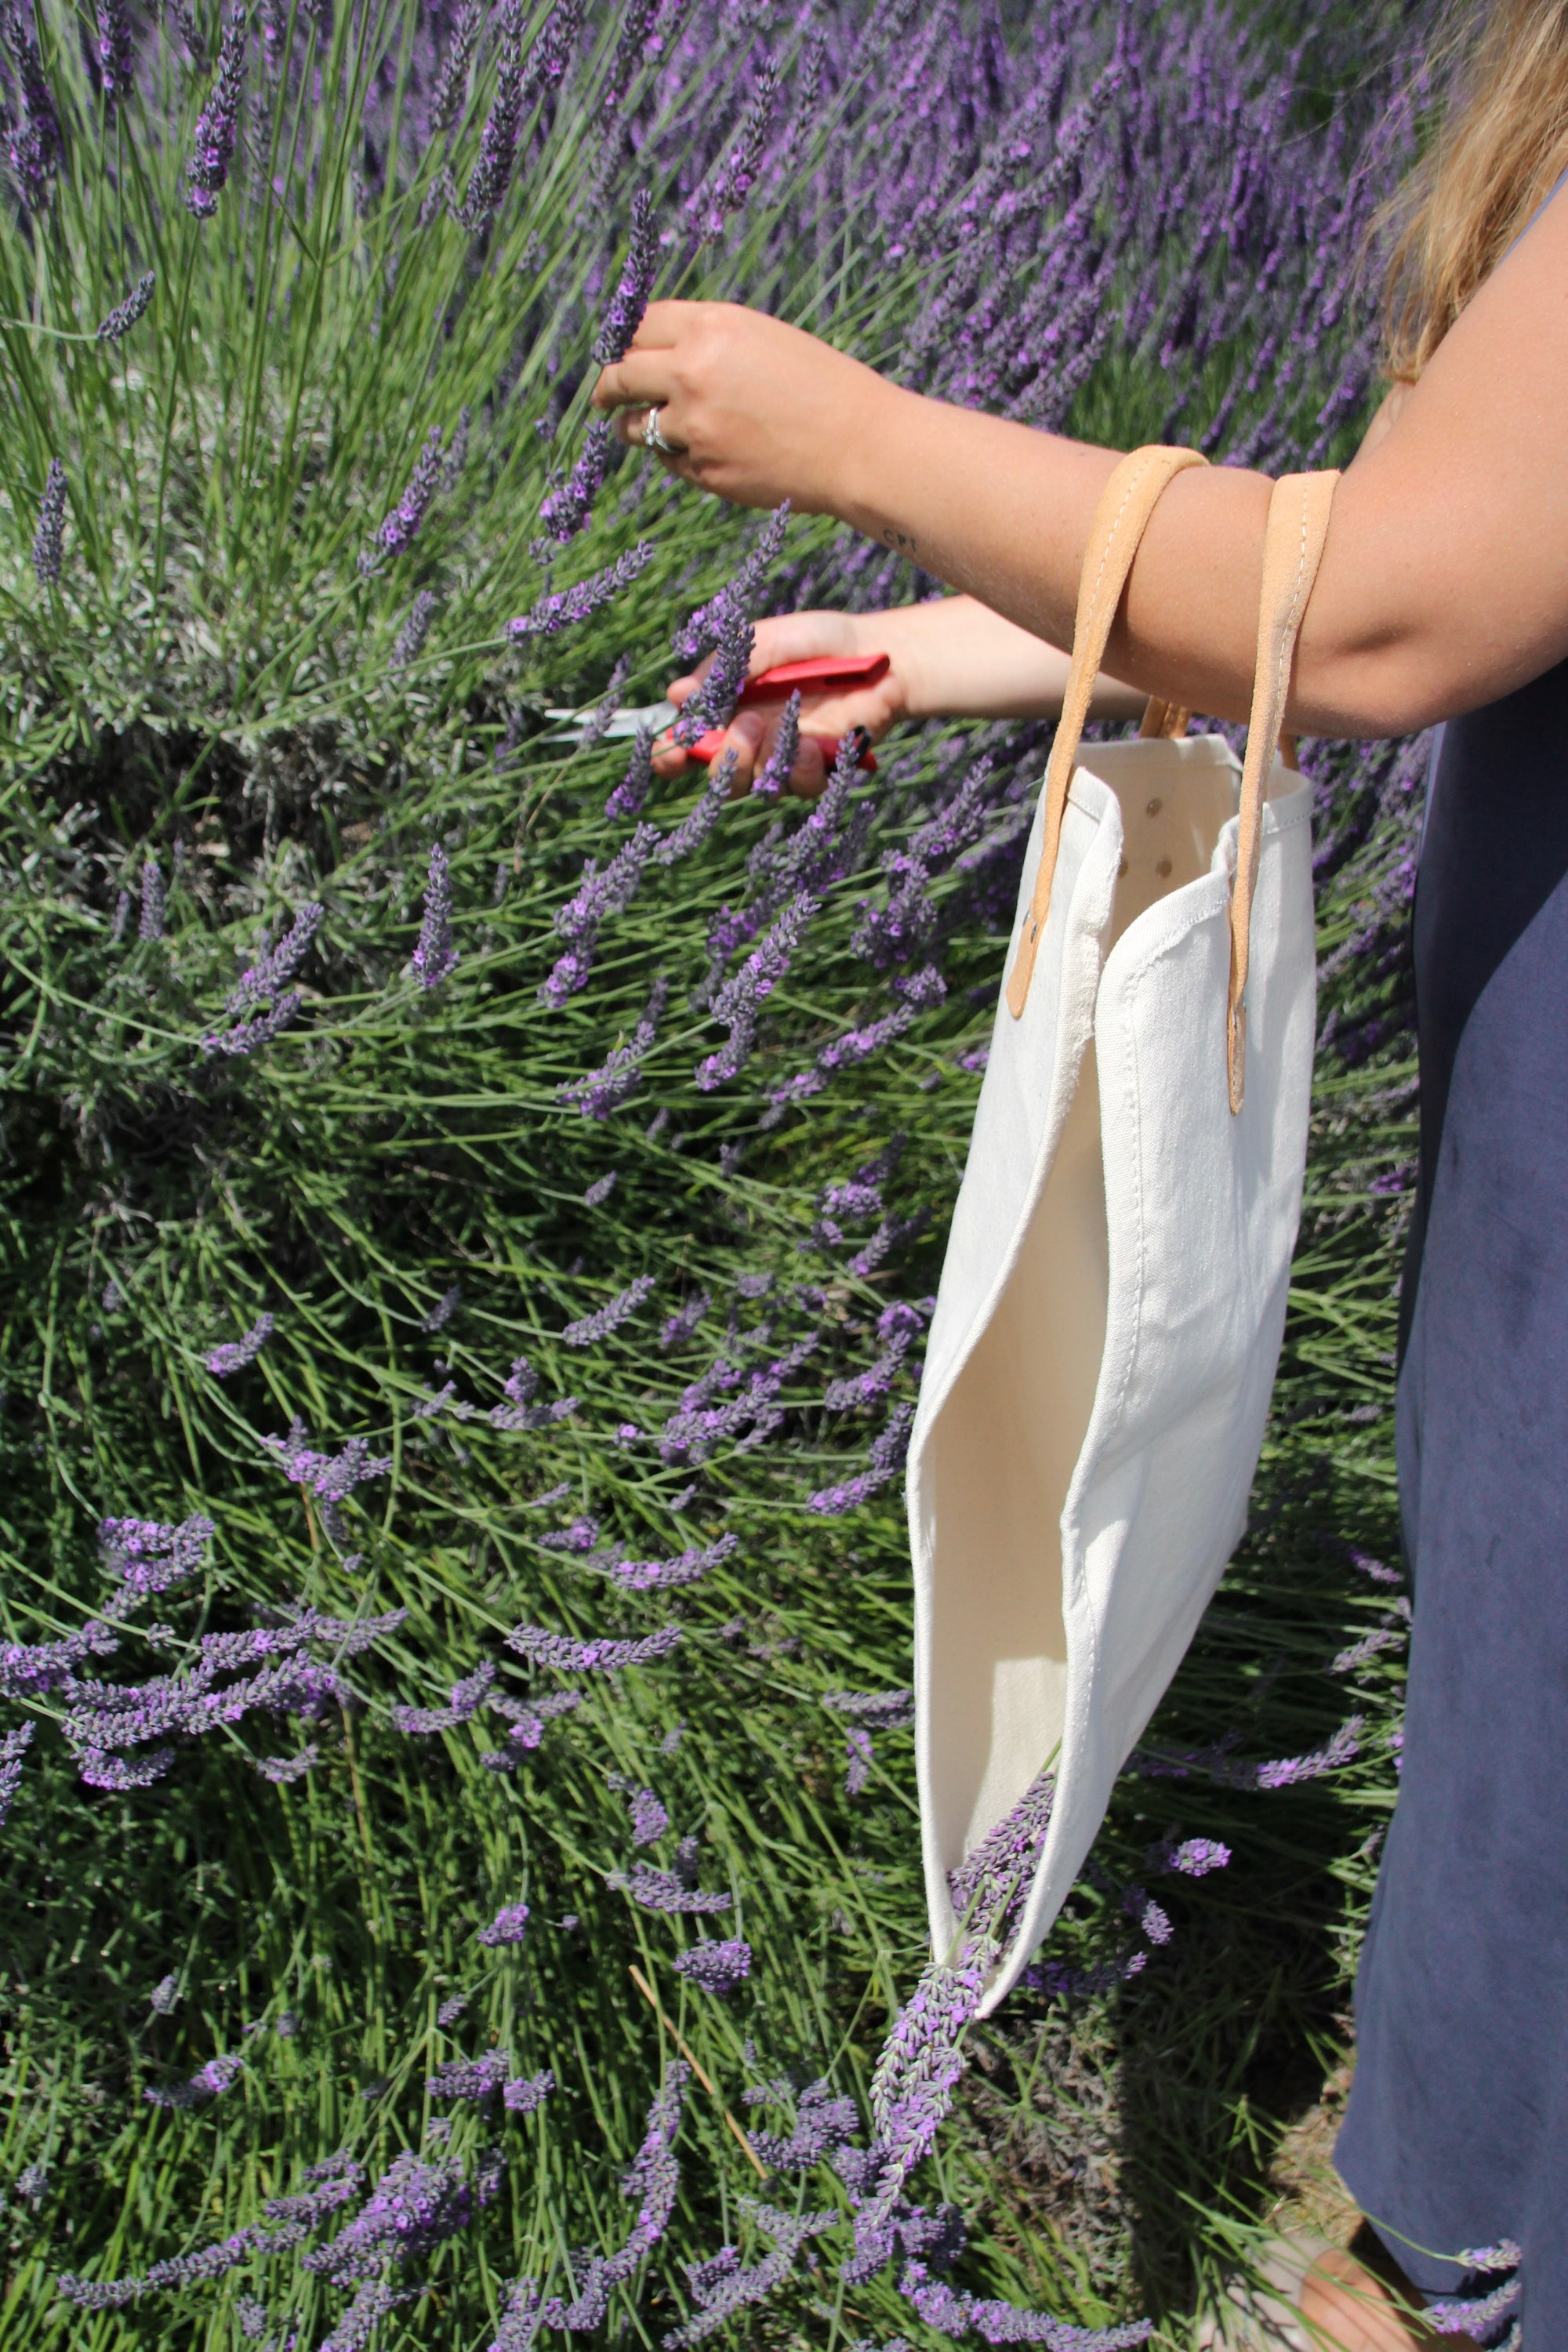 Lavender Fields Forever - A Dreamy Seattle Escape - The Stemmery